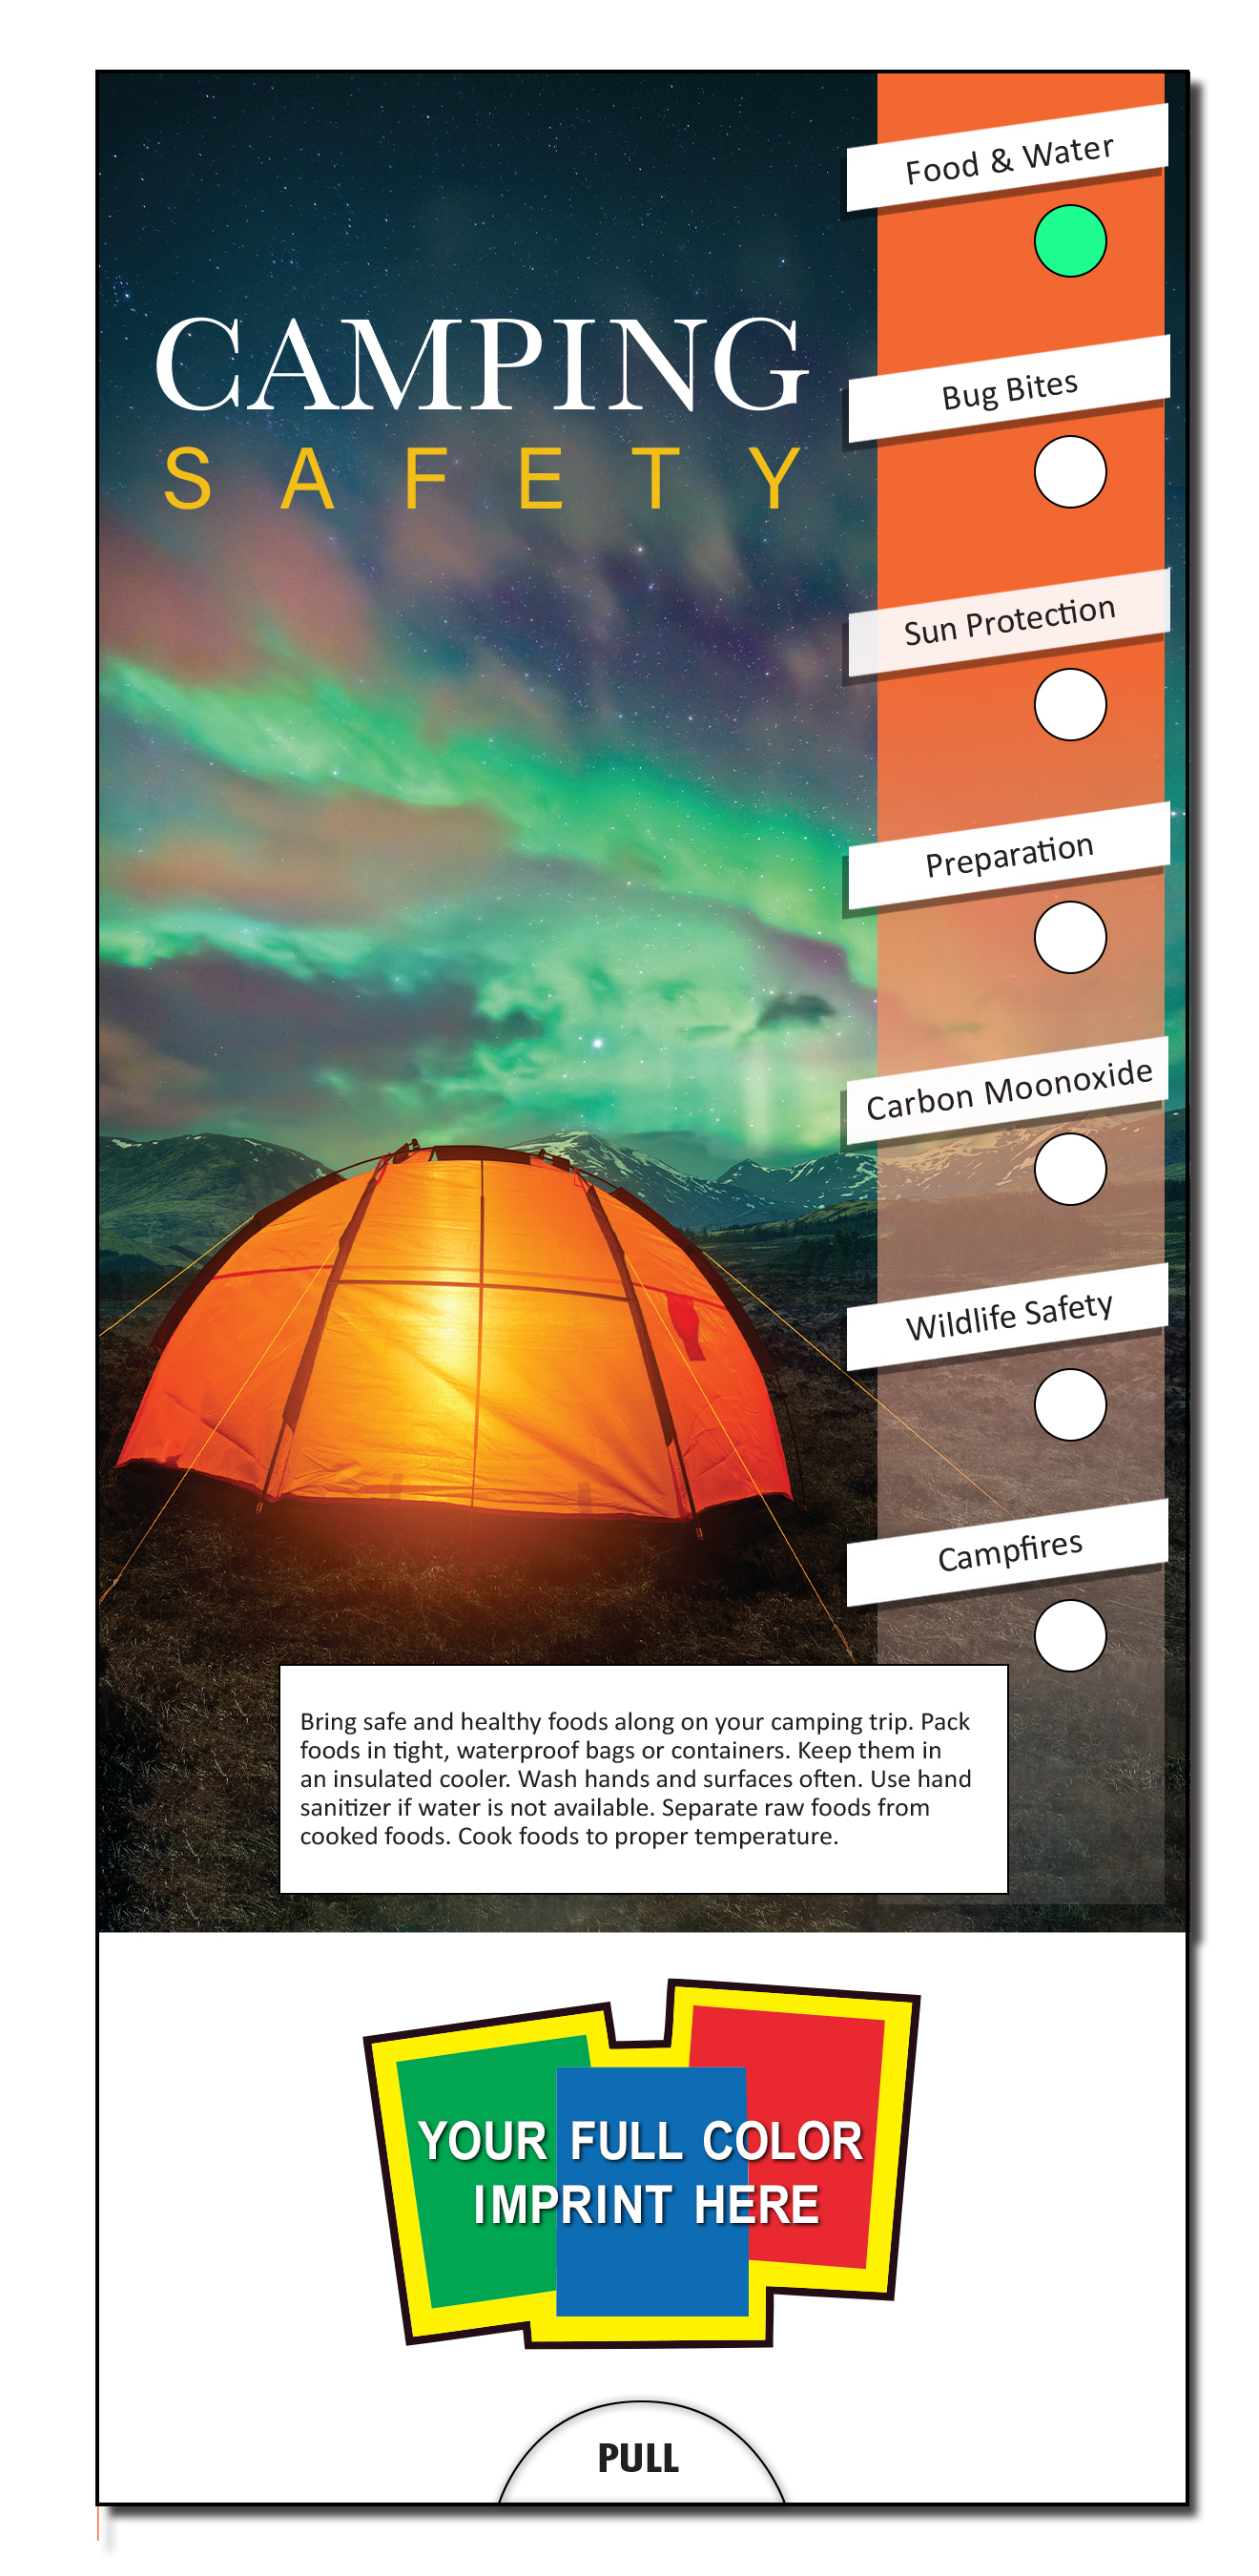 SLIDE CHART - Camping Safety